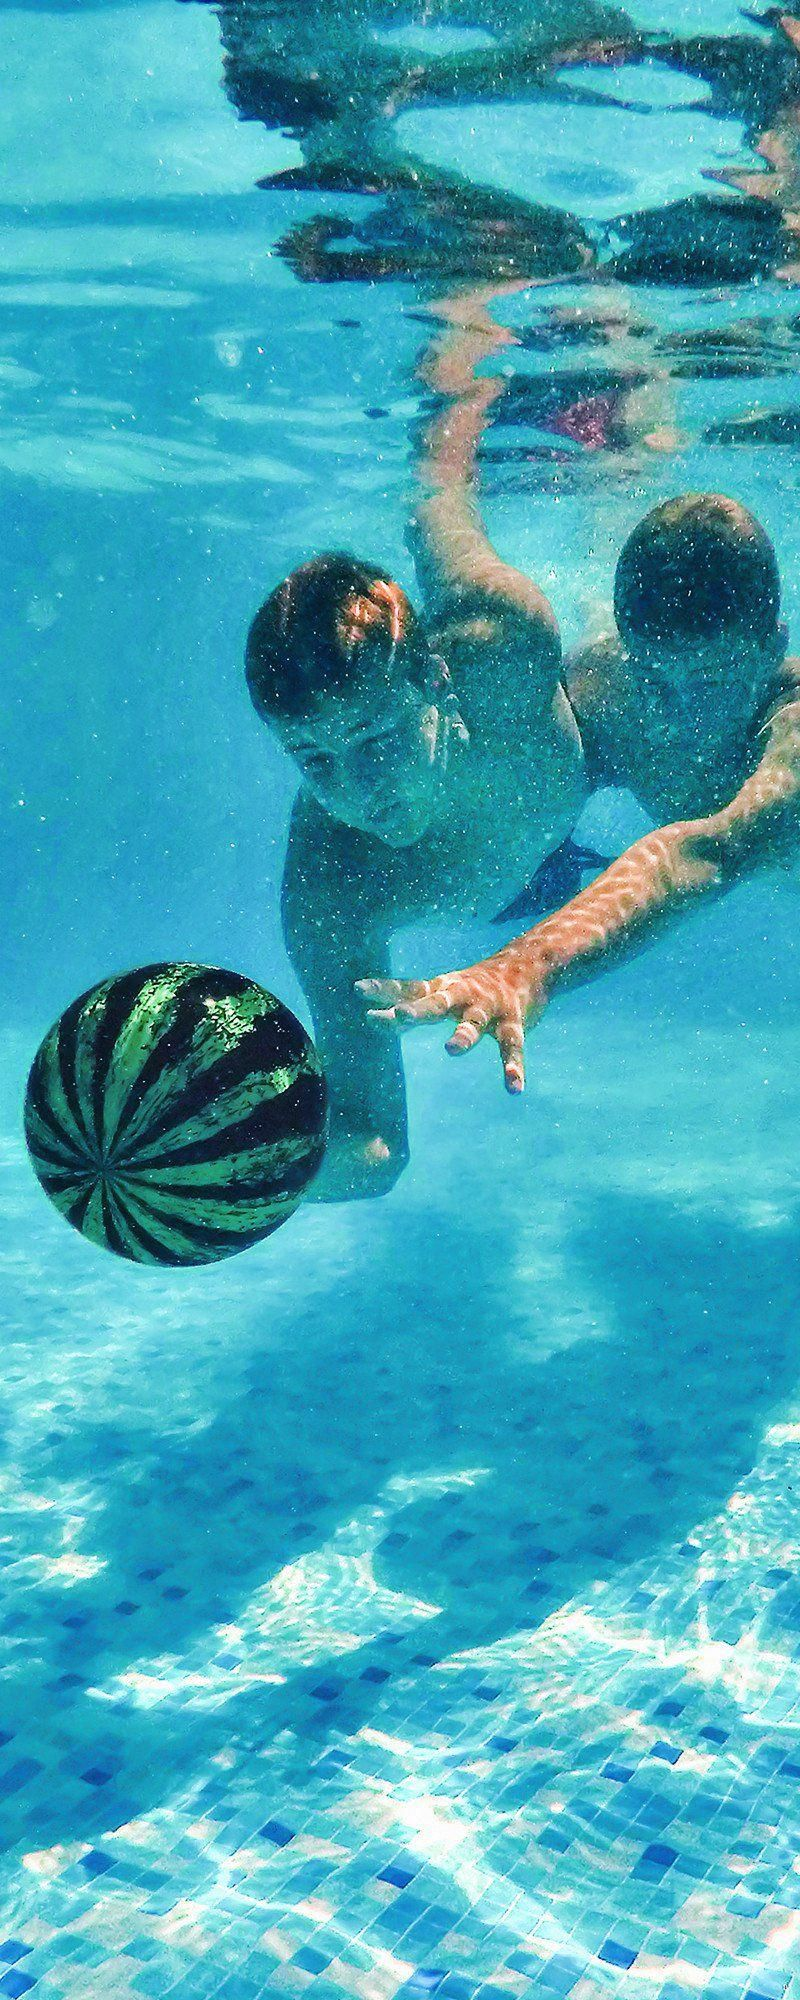 For your next swimming pool game, toss around a Watermelon